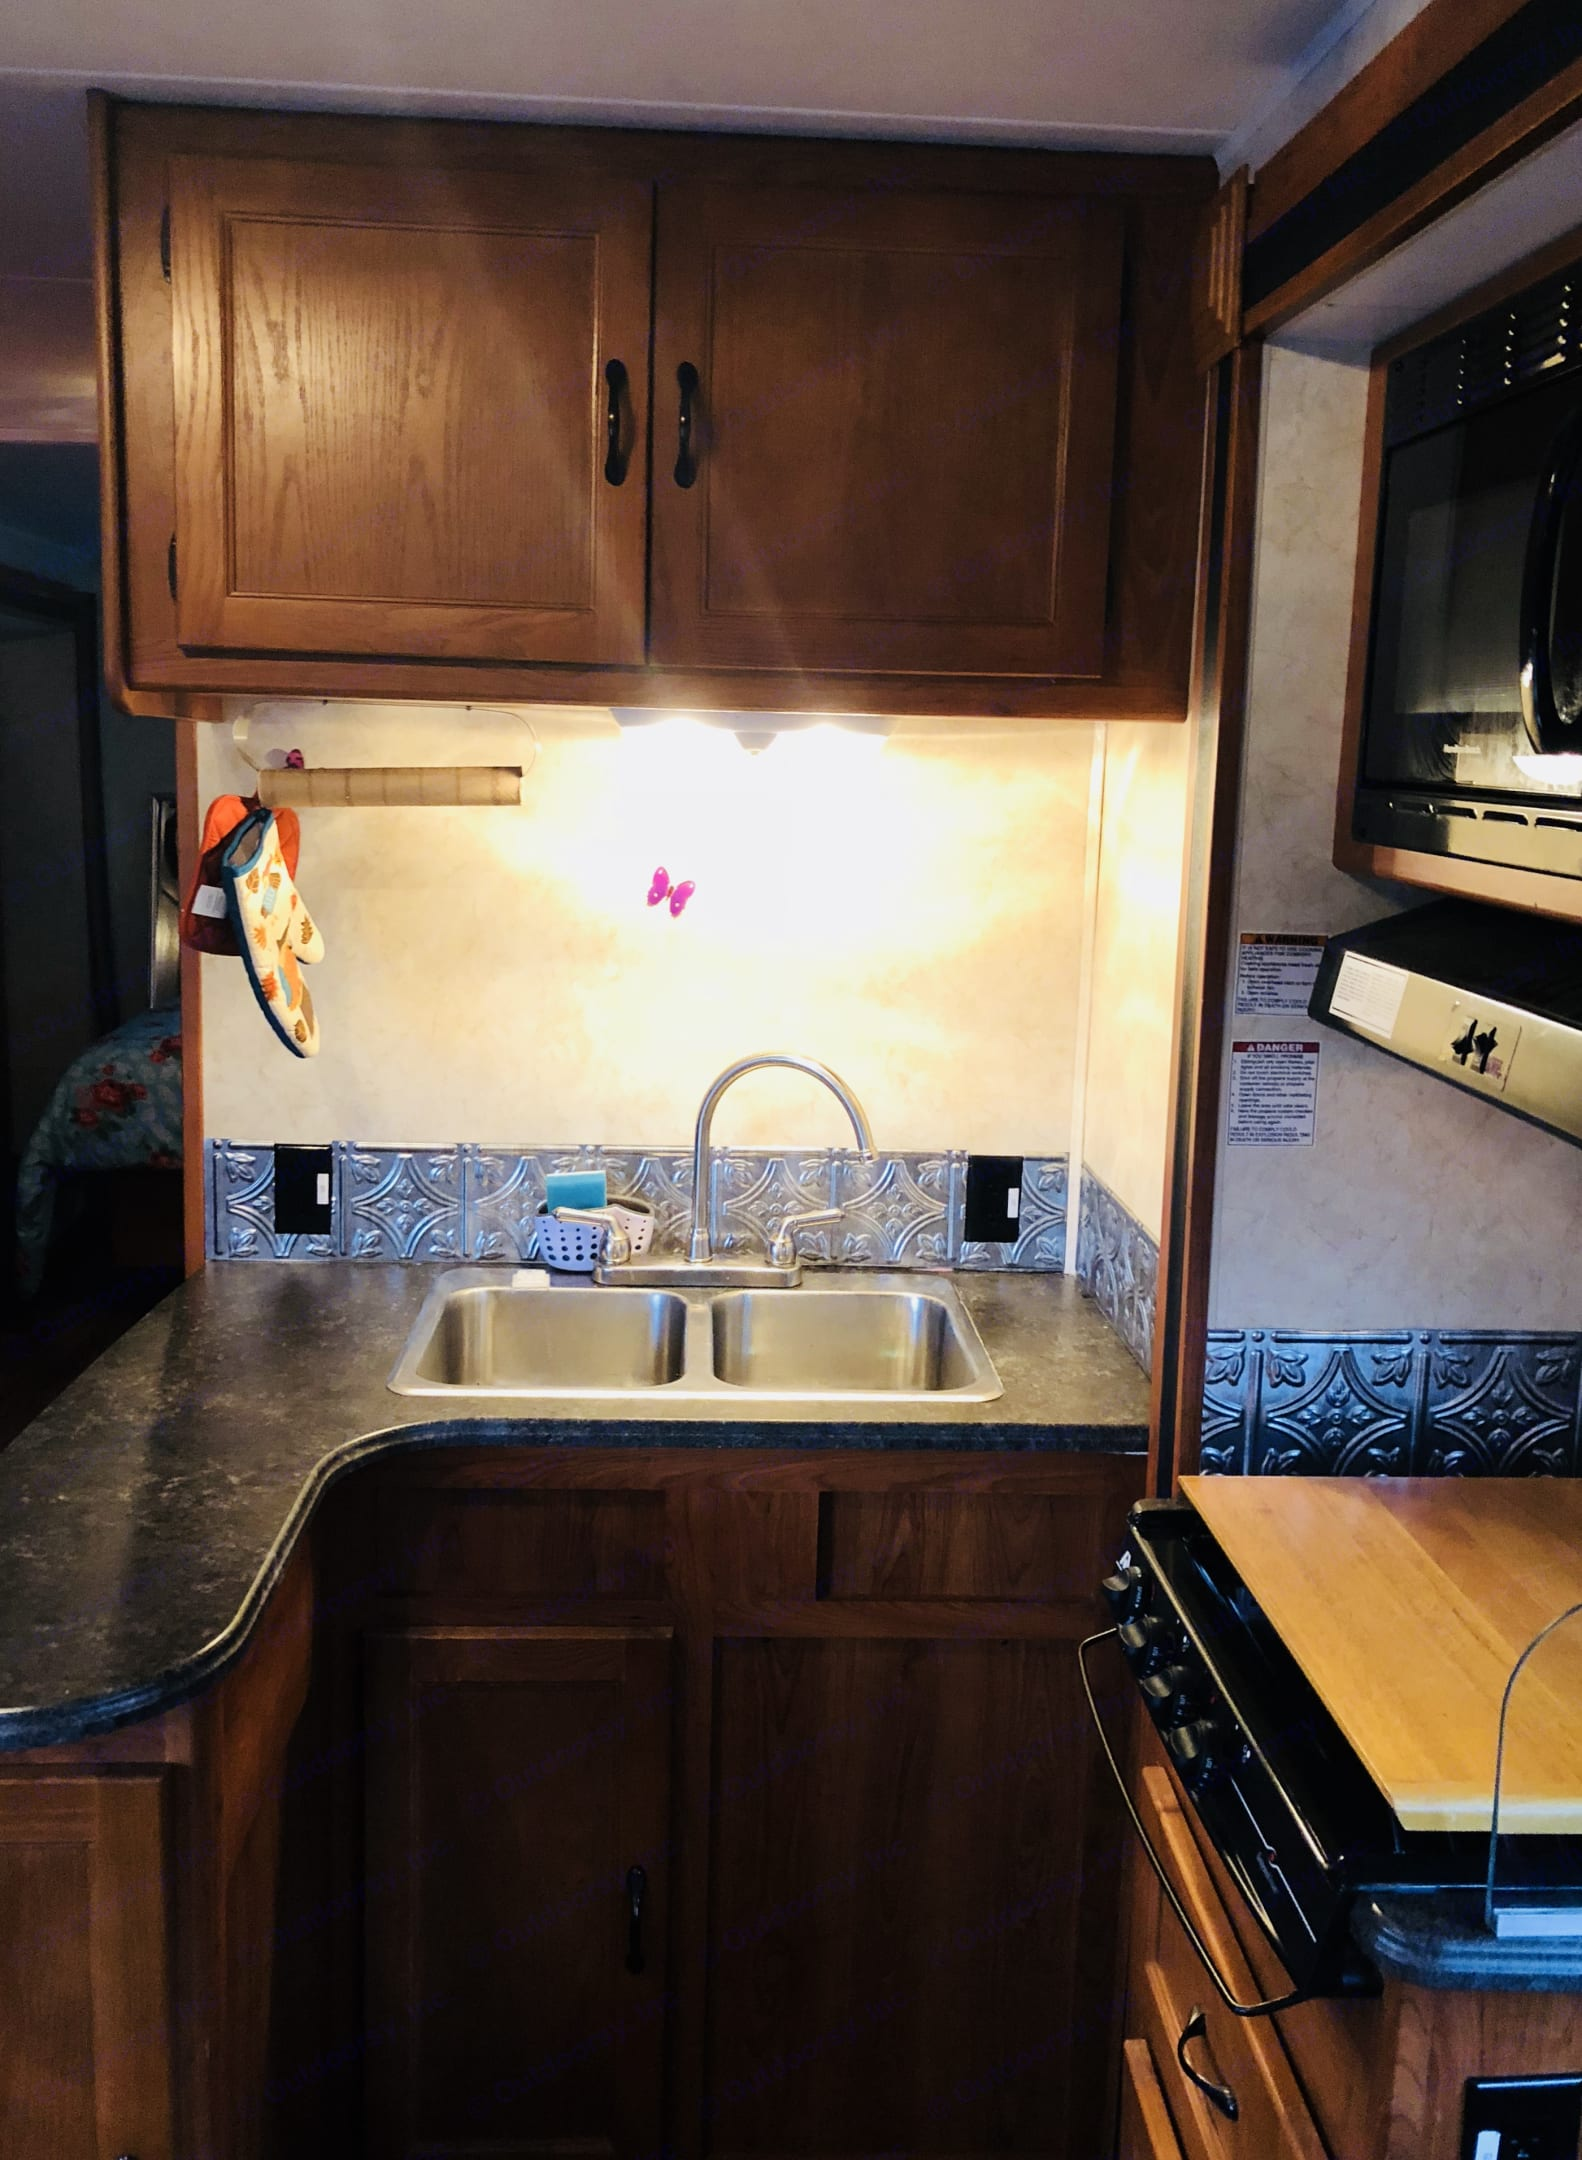 Kitchen with new backsplash and a full sink, stove top, and microwave. Also comes equipped with pots and pans and utensils. . Coachmen Freelander 2012